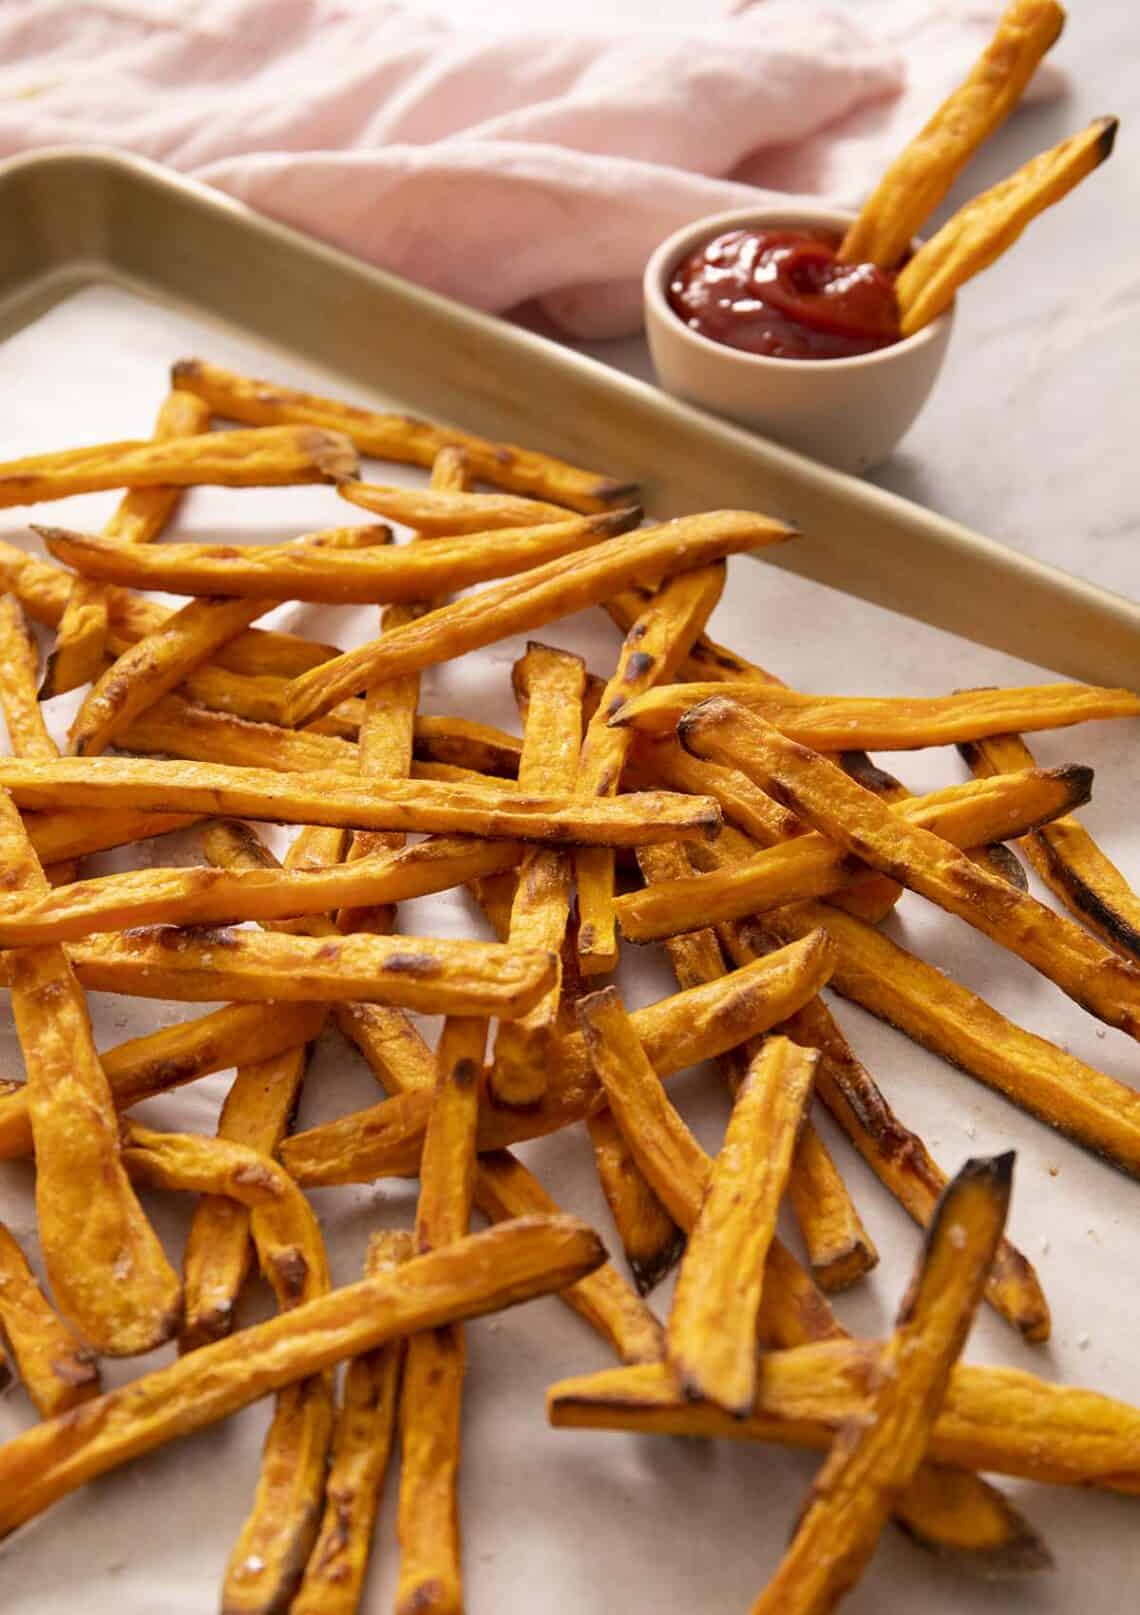 A pile of sweet potato fries on a golden baking sheet.